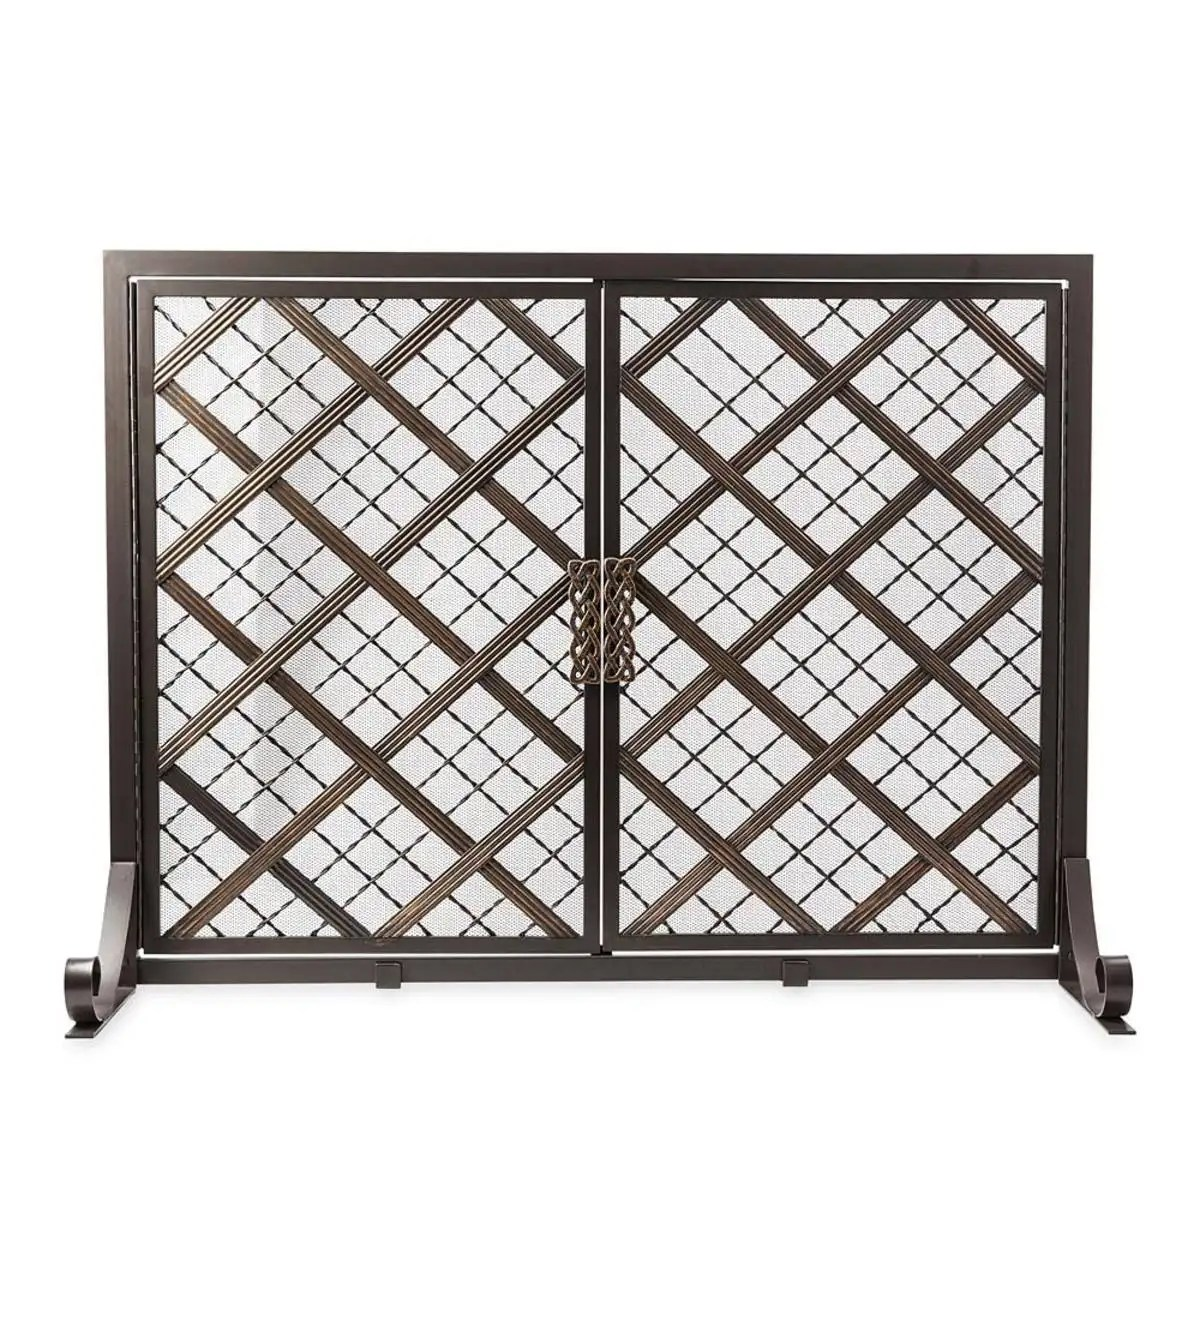 Small Fireplace Screens Under 30 Wide Mccormick Celtic Fireplace Screen Large